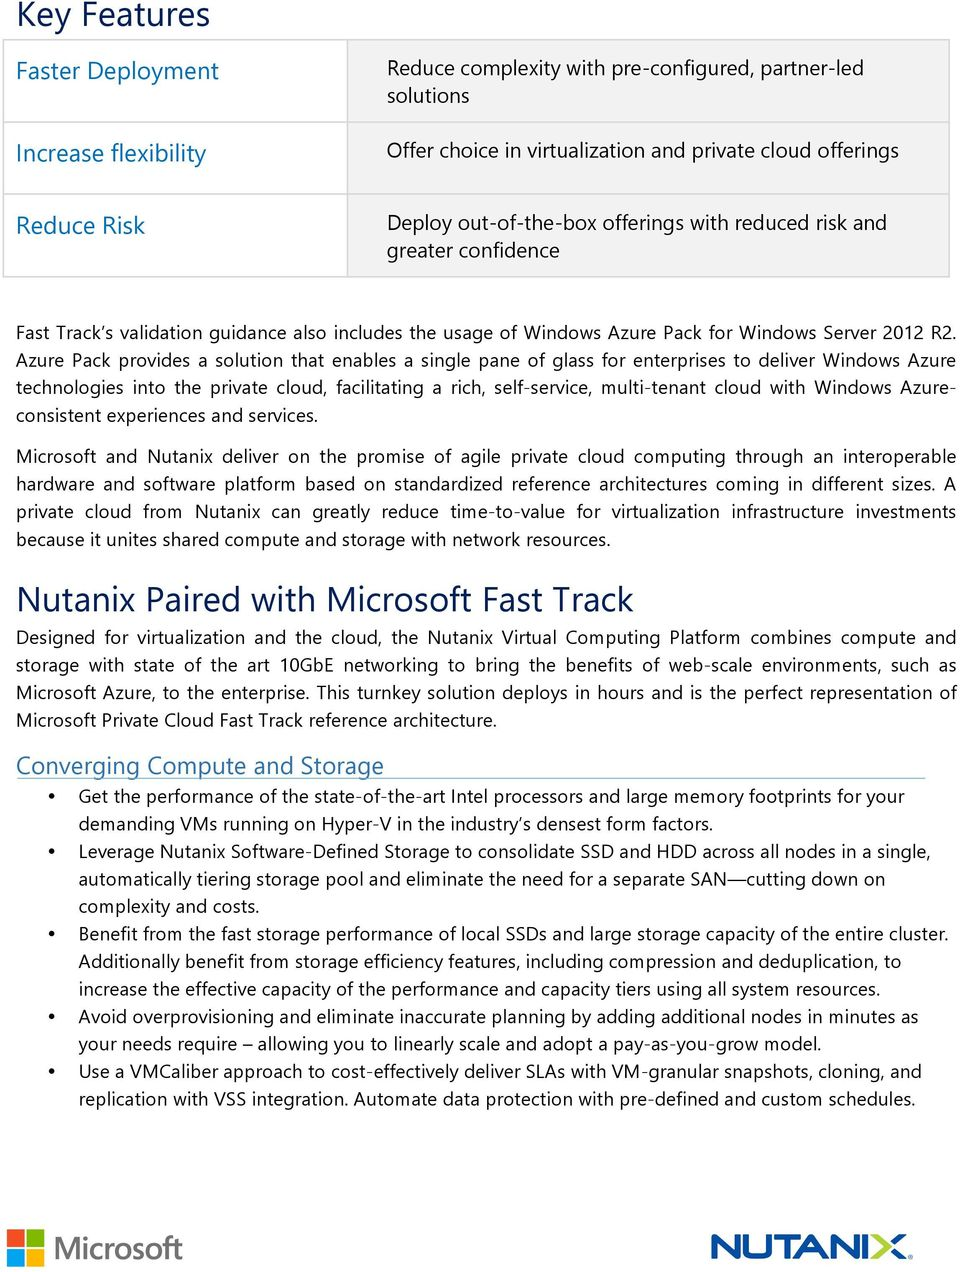 Azure Pack provides a solution that enables a single pane of glass for enterprises to deliver Windows Azure technologies into the private cloud, facilitating a rich, self- service, multi- tenant